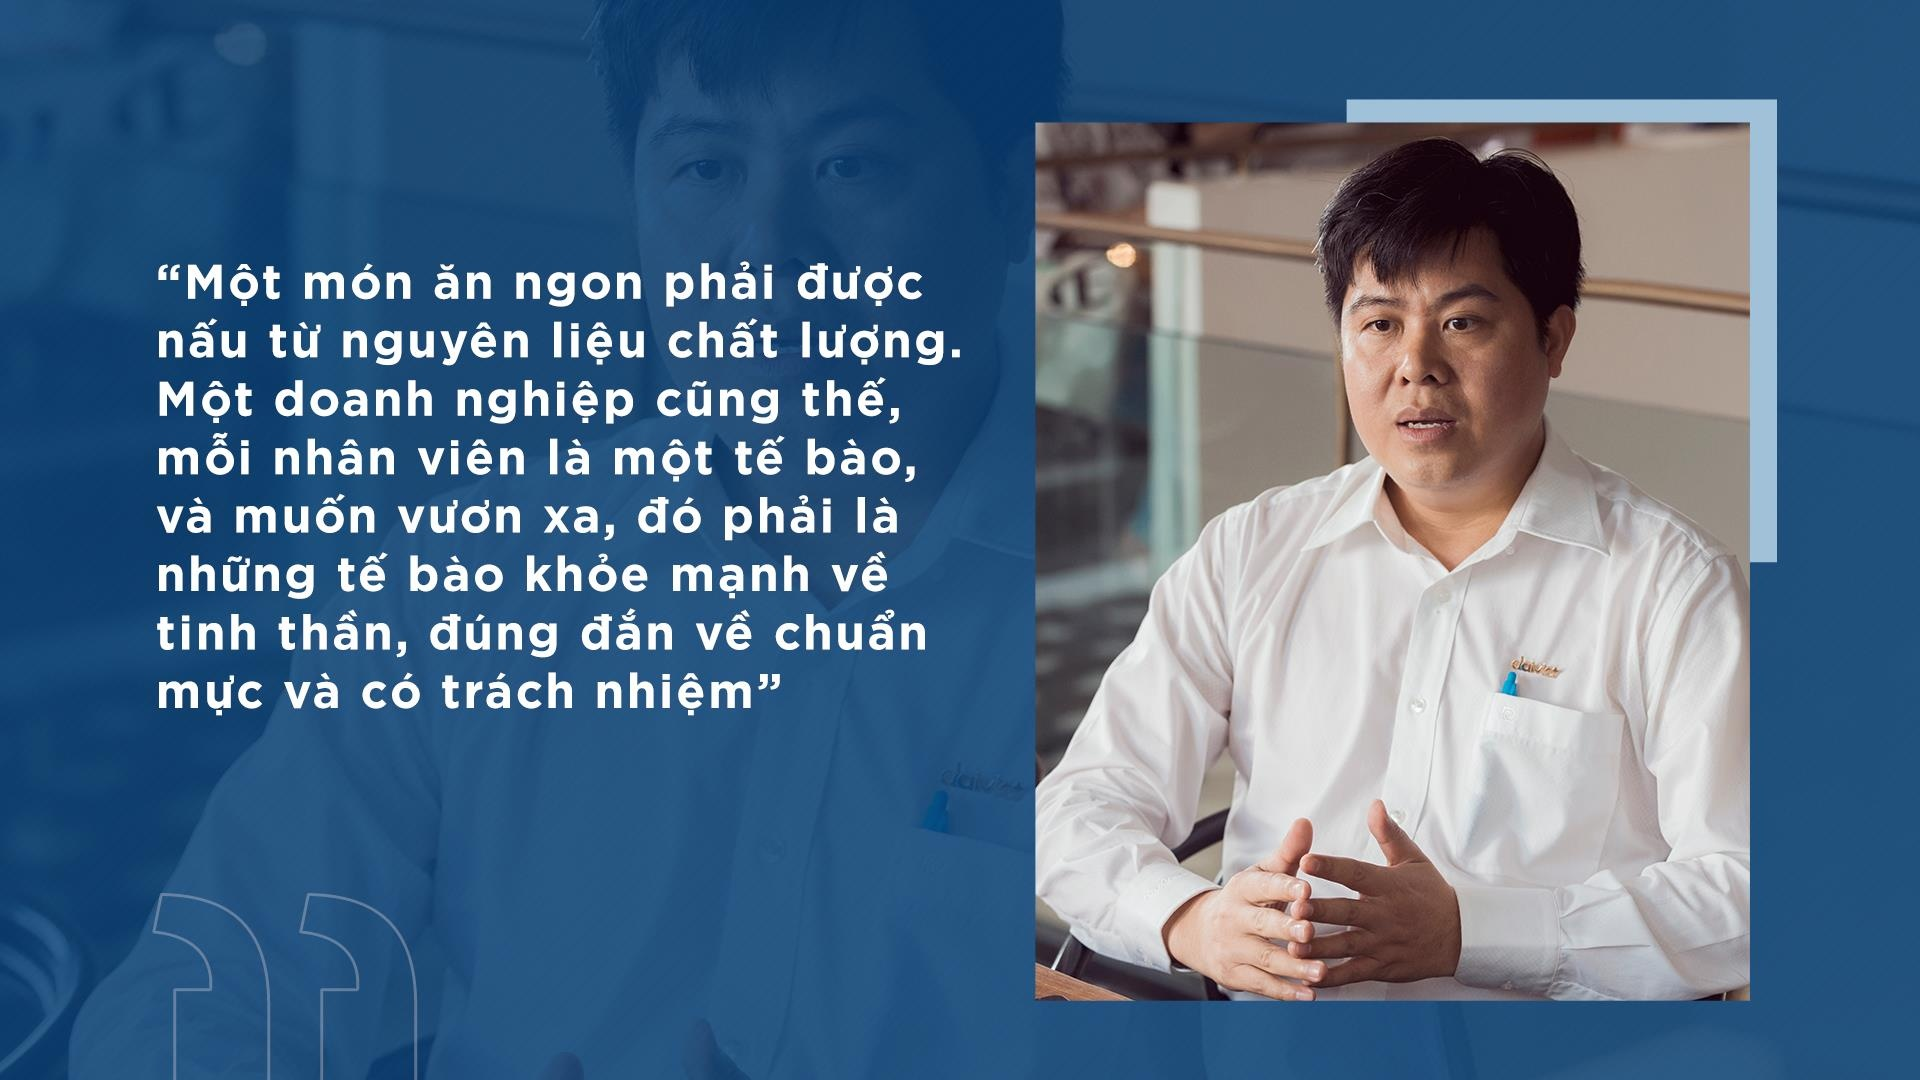 Triet ly 'thoi linh hon, uom cot cach' cua CEO Dai Viet hinh anh 9